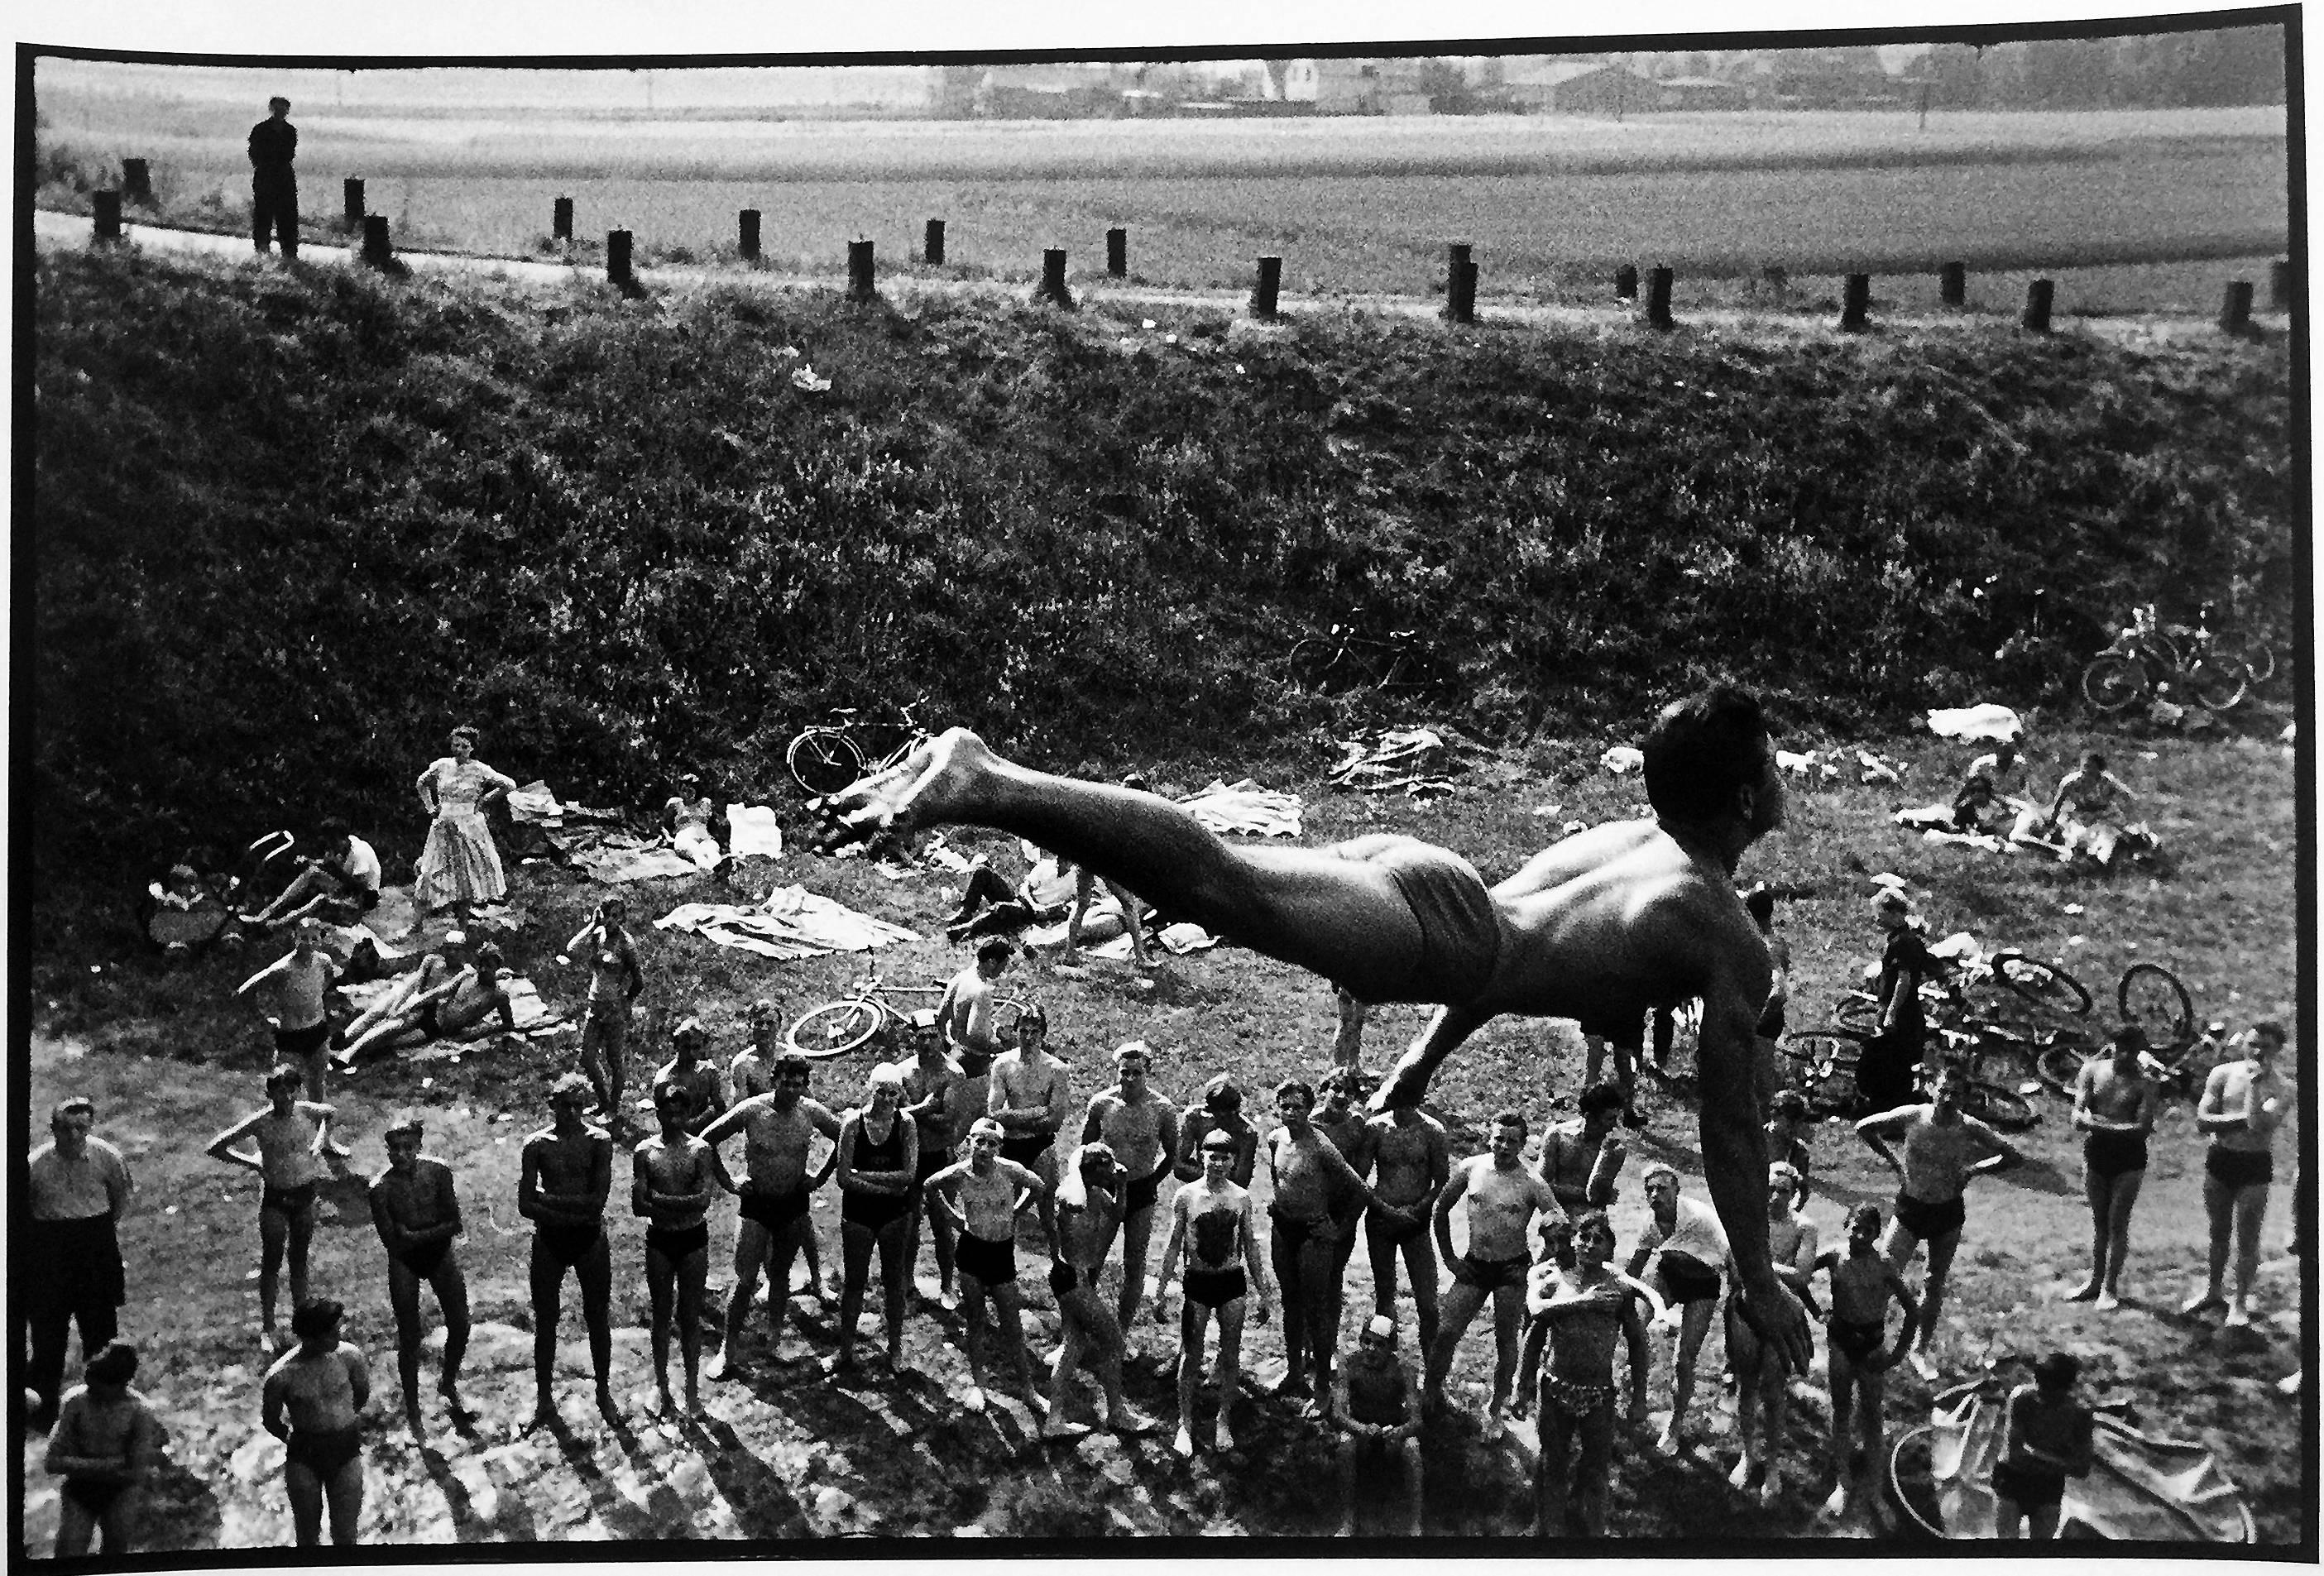 Leonard freed diver germany black and white figurative documentary photography